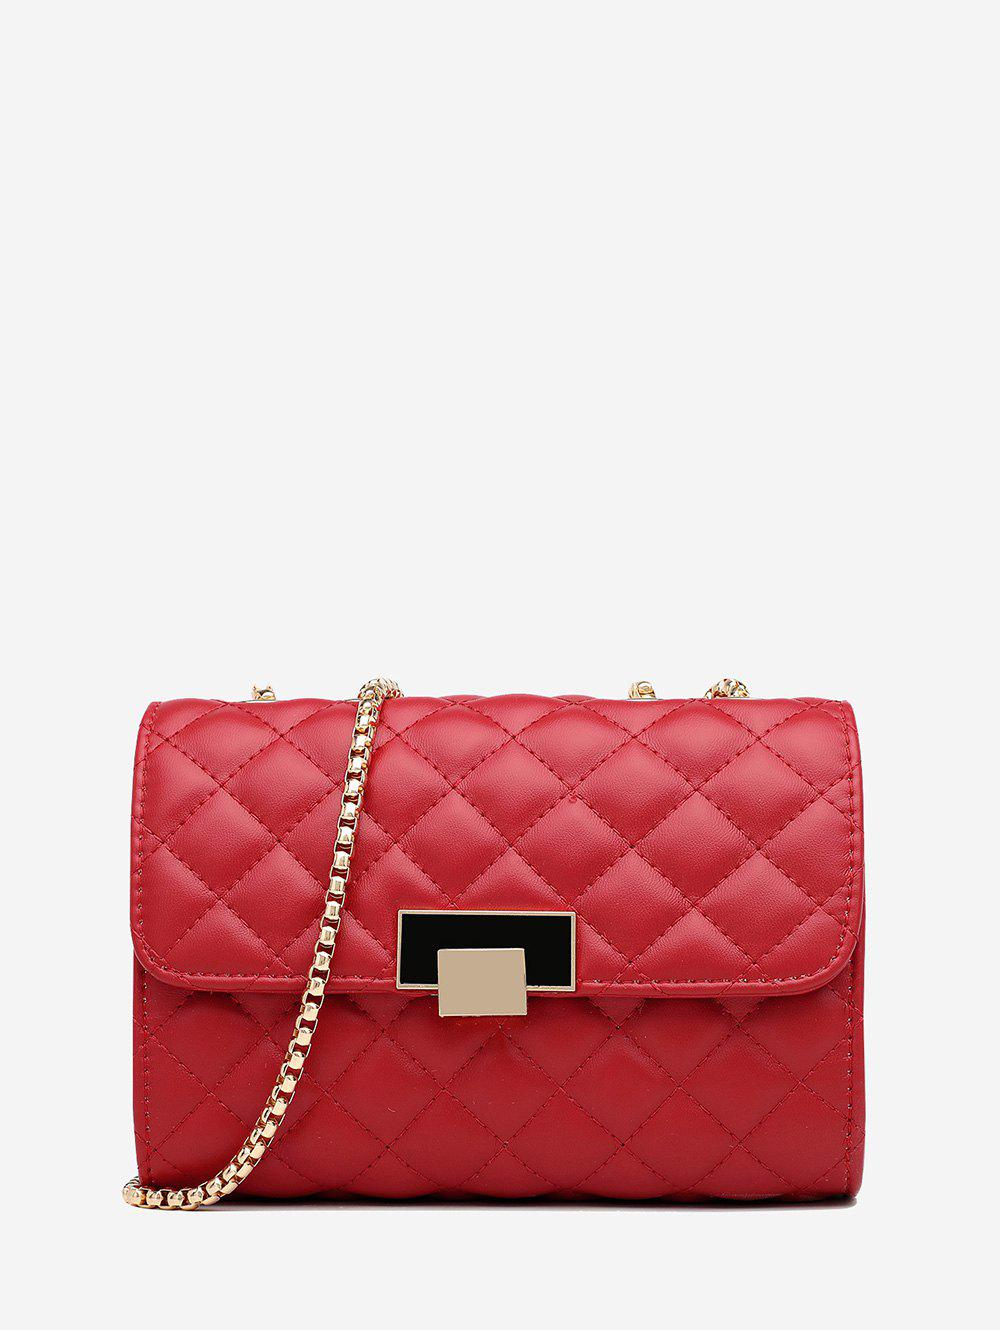 Quilted Geometric Pattern Chain Cover Crossbody Bag - RED WINE